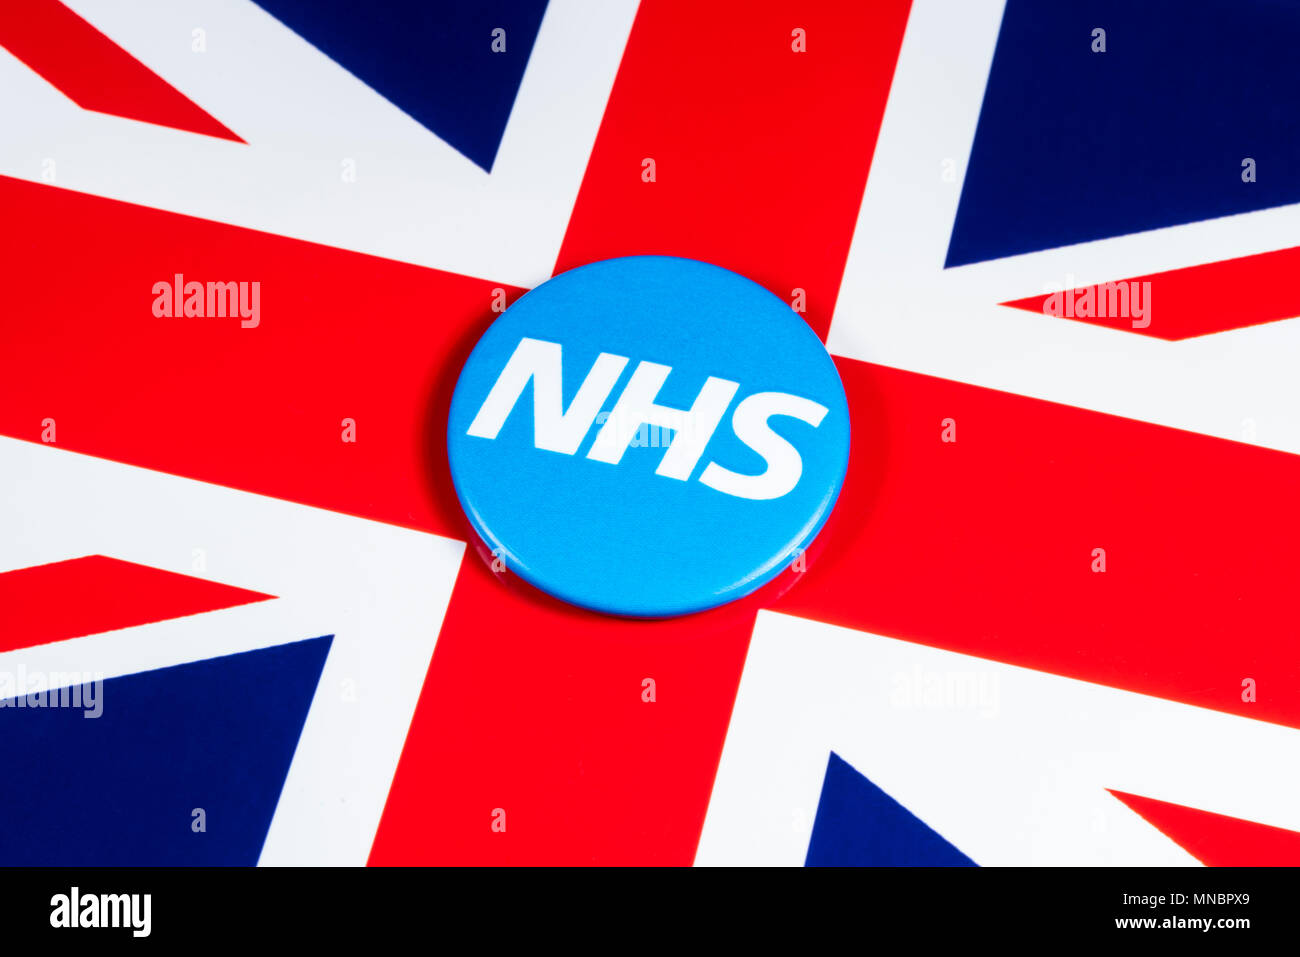 LONDON, UK - APRIL 27TH 2018: The National Health Service symbol over the UK flag, on 27th April 2018.  The NHS was established in 1948 as one of the  - Stock Image